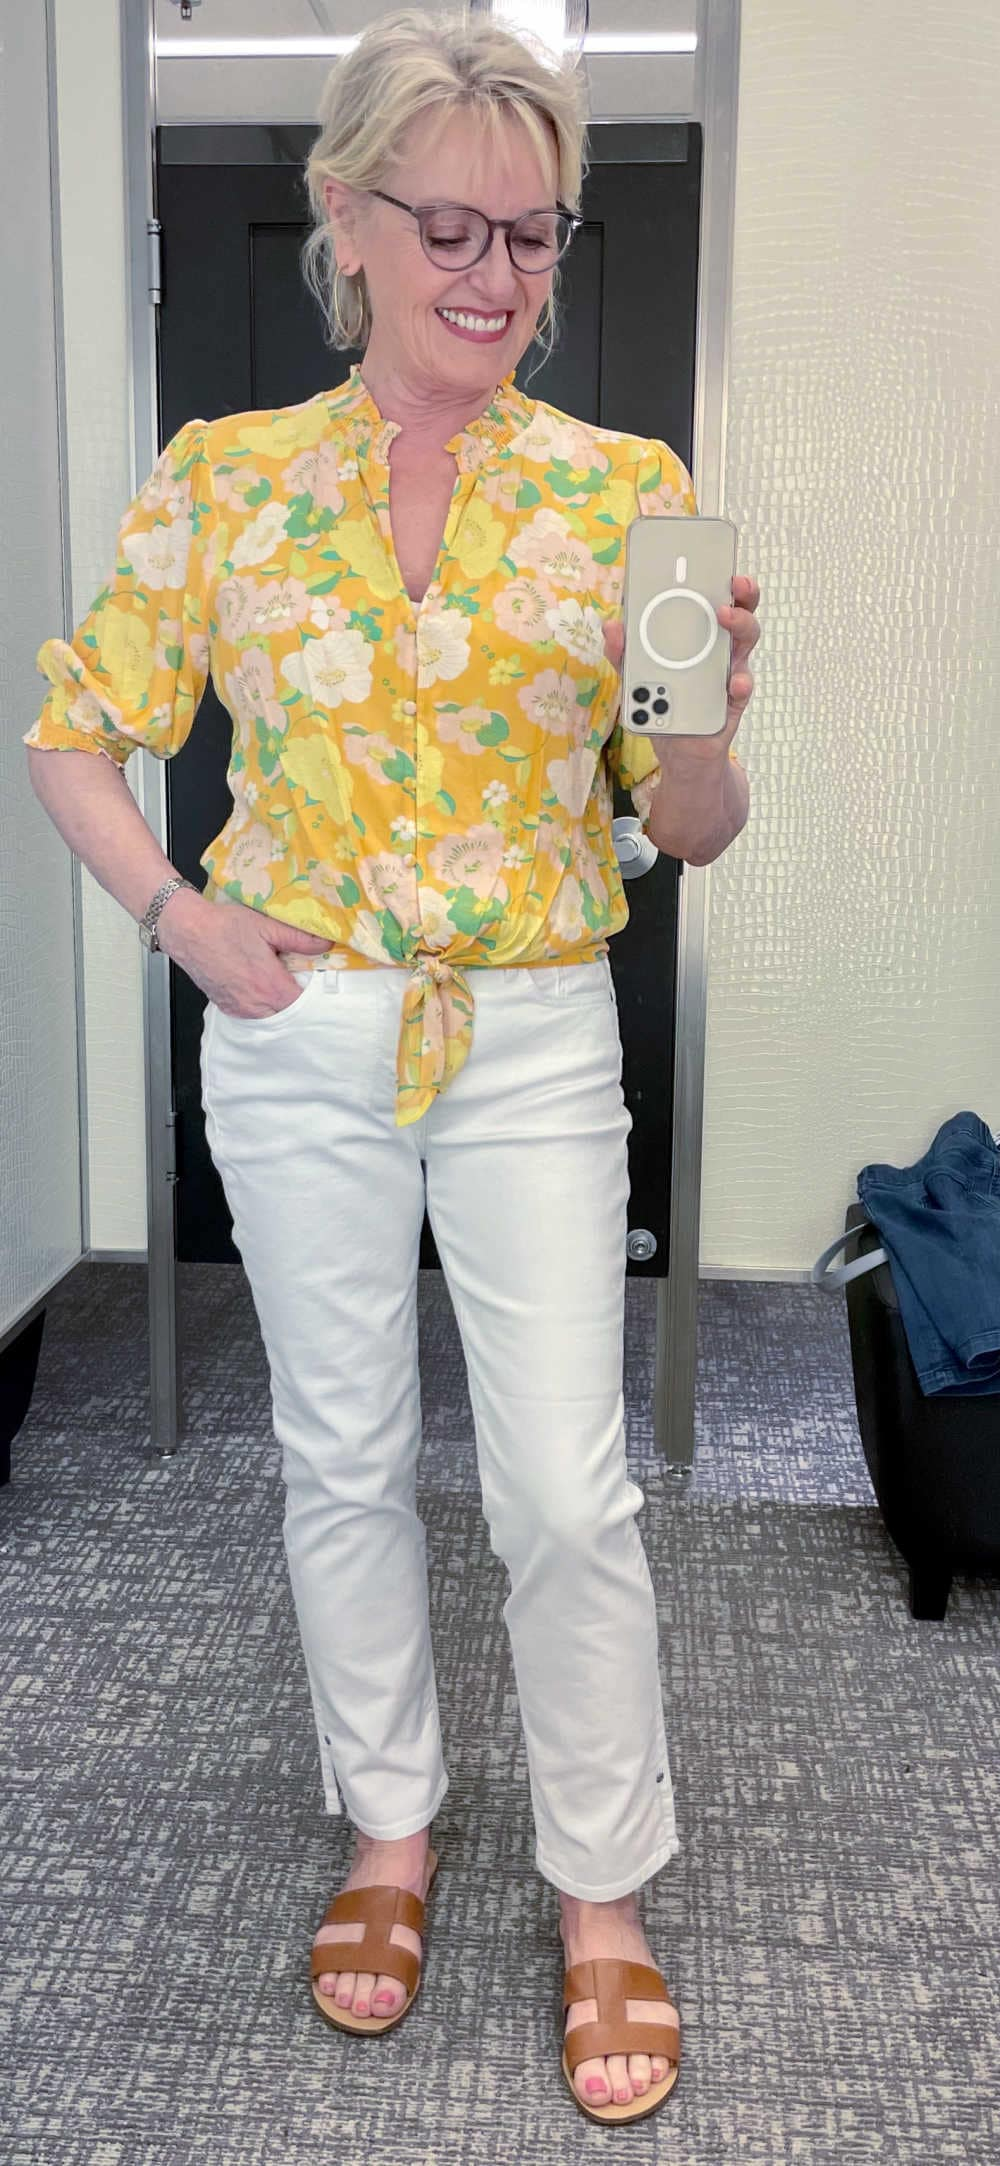 blonde woman in selfie wearing yellow top and white jeans